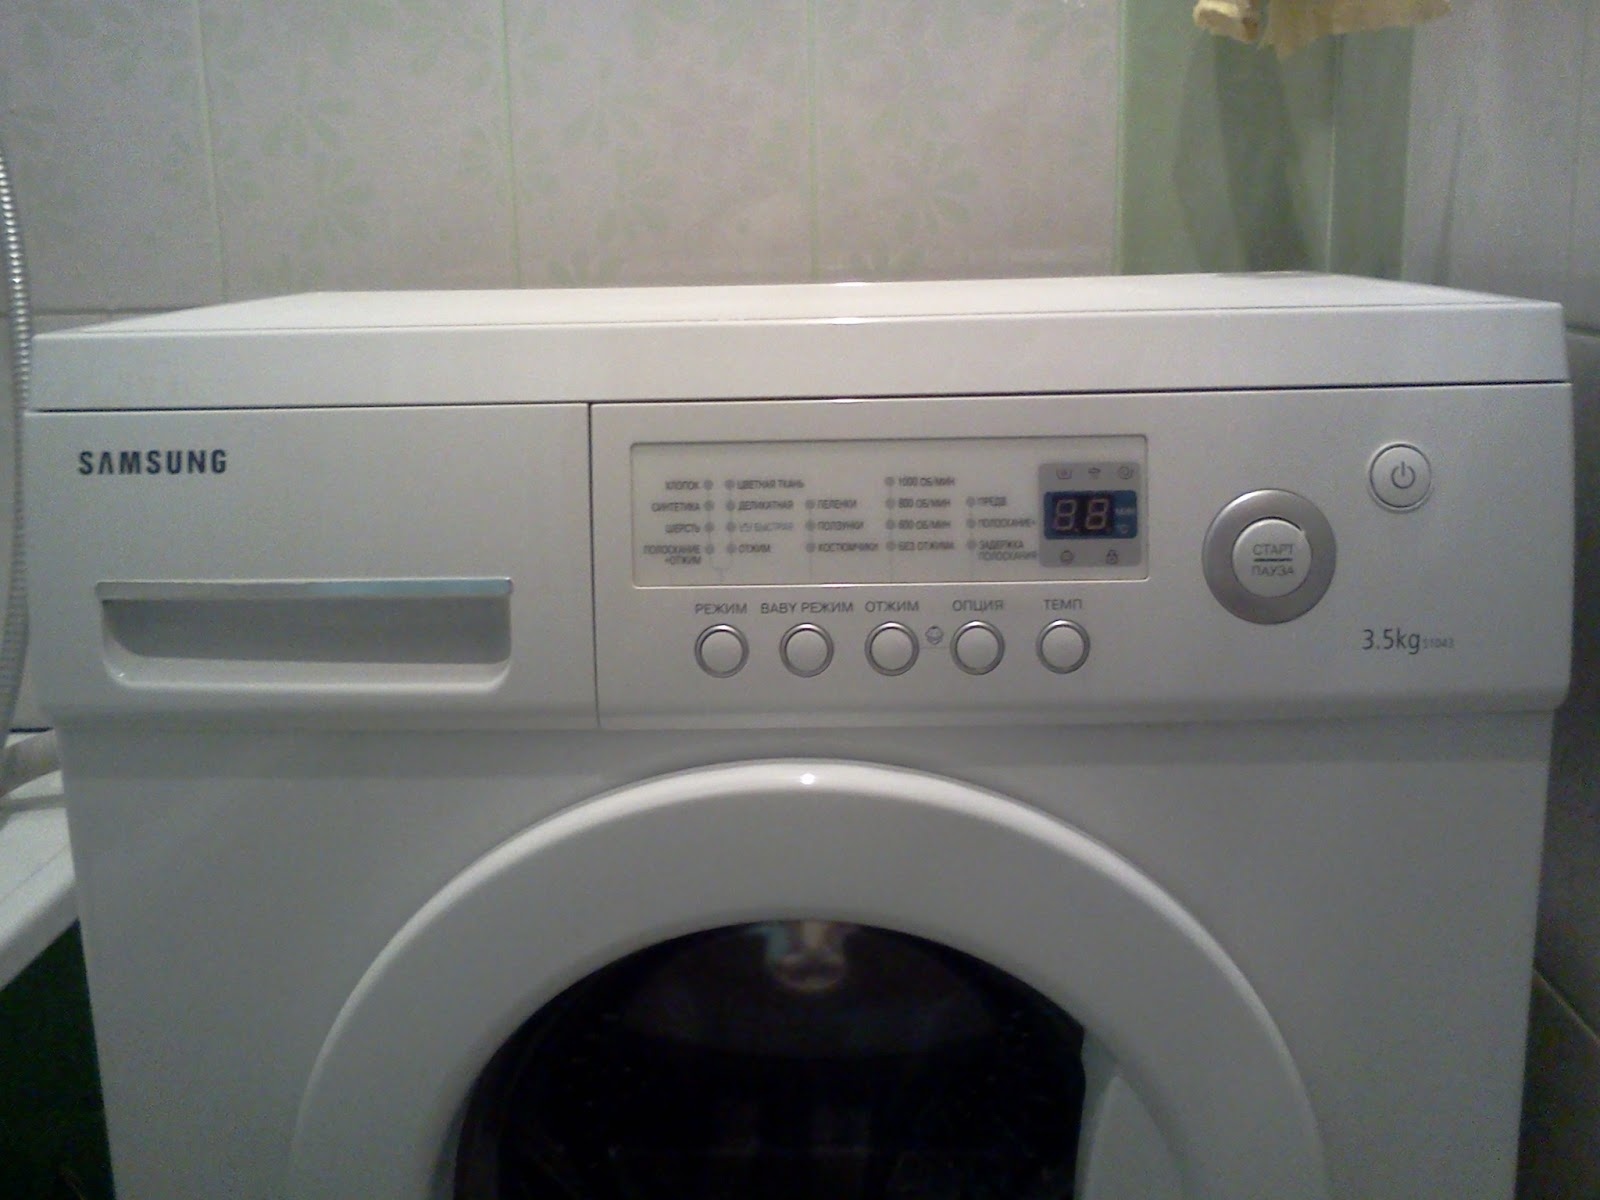 стиральная машина indesit wisn 82 csi 3 5кг инструкция